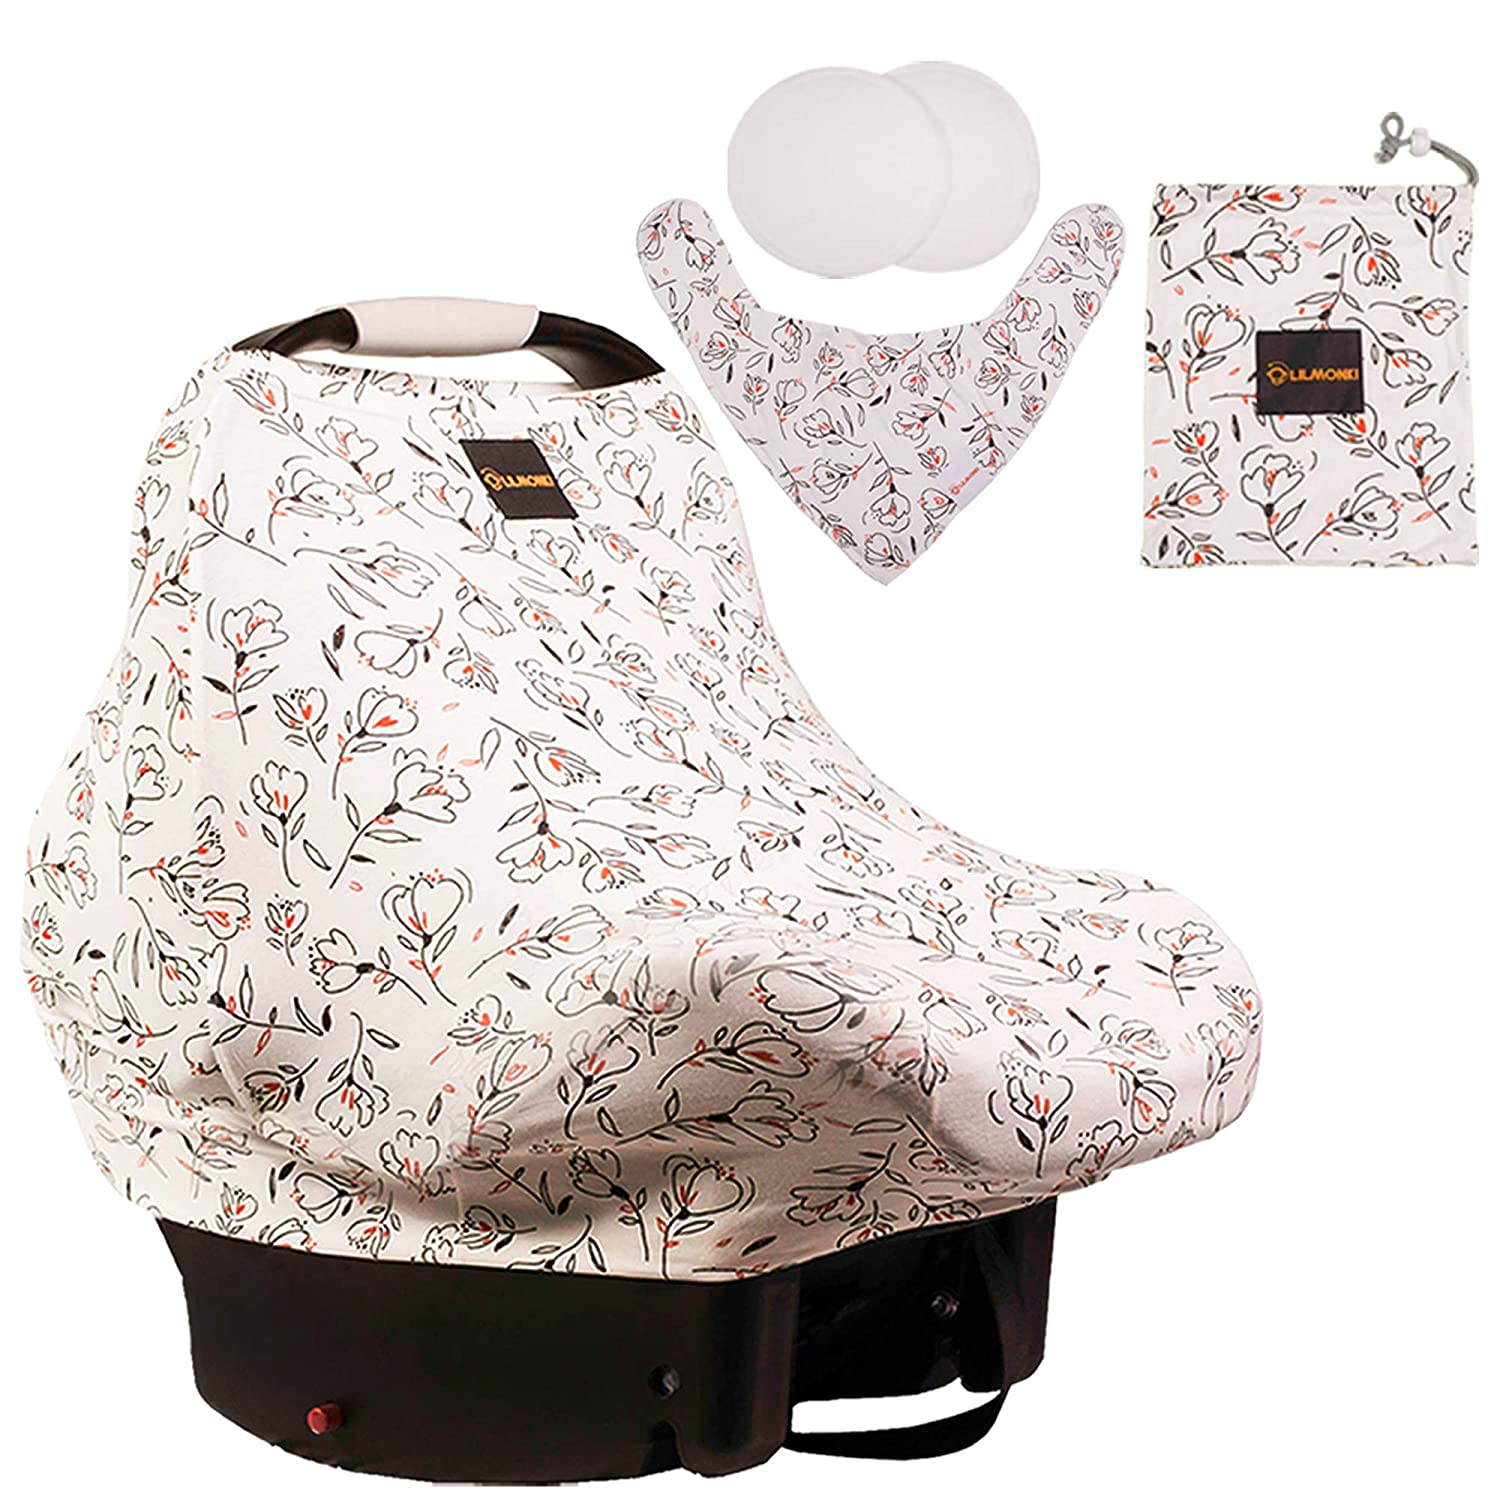 Lilmonki Nursing Scarf Multi-Use - Breathable Car Seat, Stroller, and Cart Cover for Babies - Colorful Tulip Print - Bandana Bib, Pouch & Nursing Pads Included